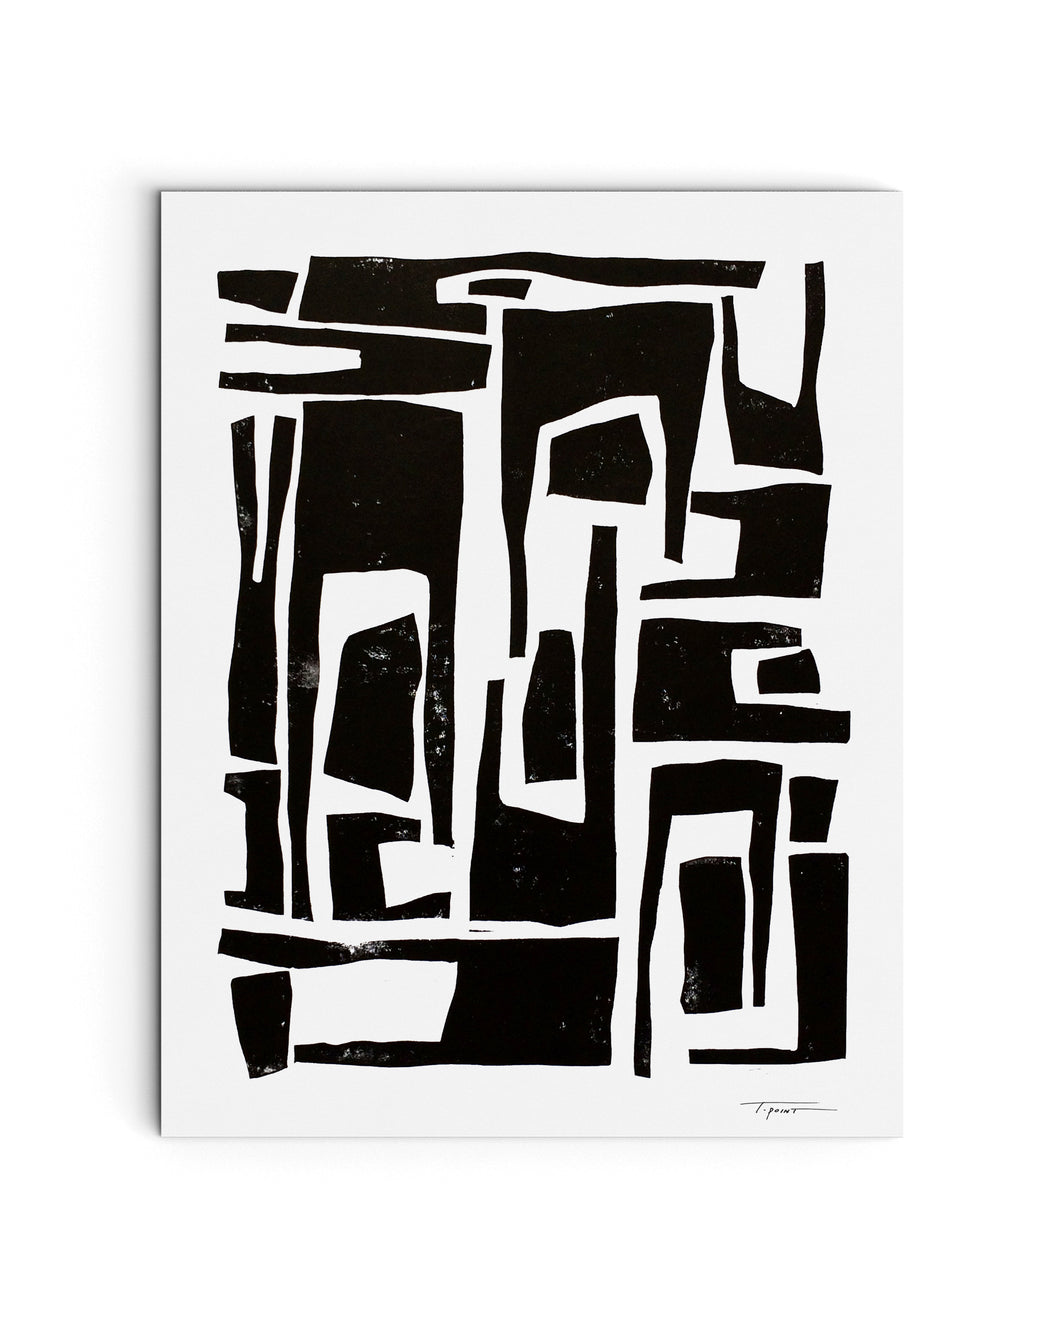 Elongated Organic and Abstract Shapes | Block Print